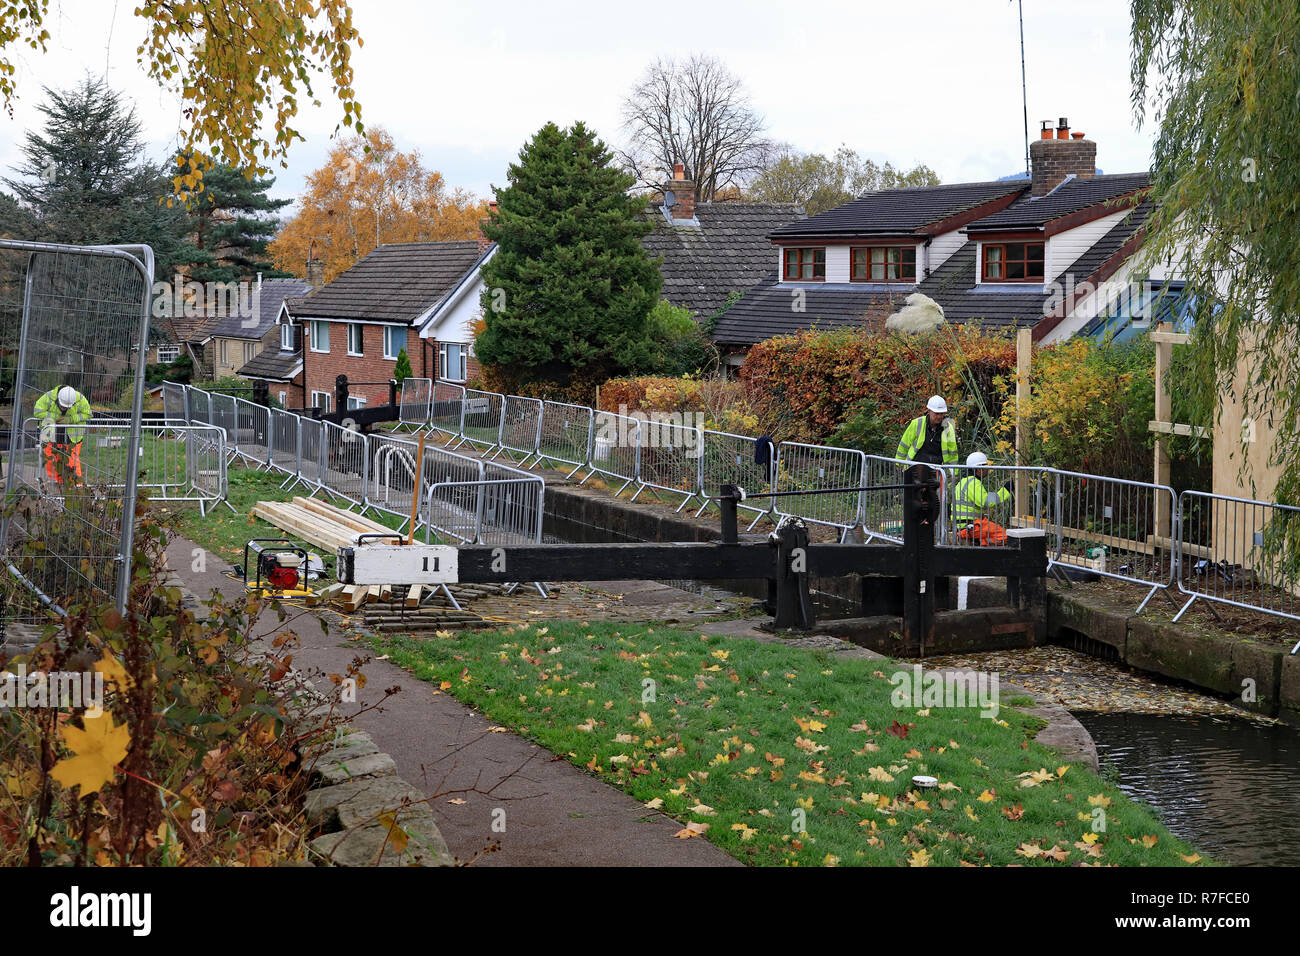 Work starts on rebuilding lock 11 on the Marple flight of locks on the Peak forest canal. The stone walls of the lock moved inwards so boats can't fit. - Stock Image